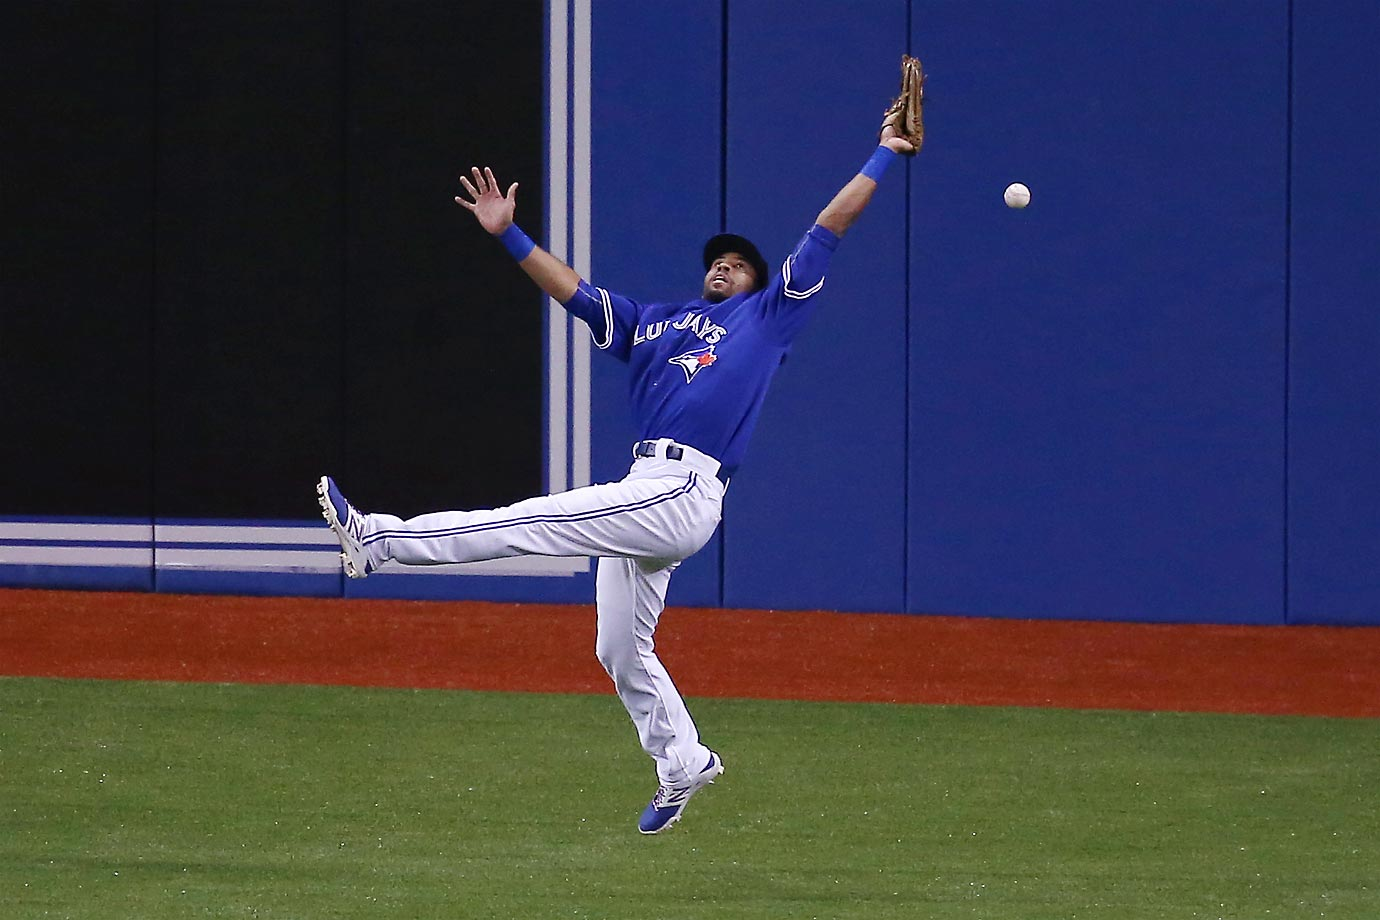 Dalton Pompey of the Toronto Blue Jays misplays a ball against the Atlanta Braves.